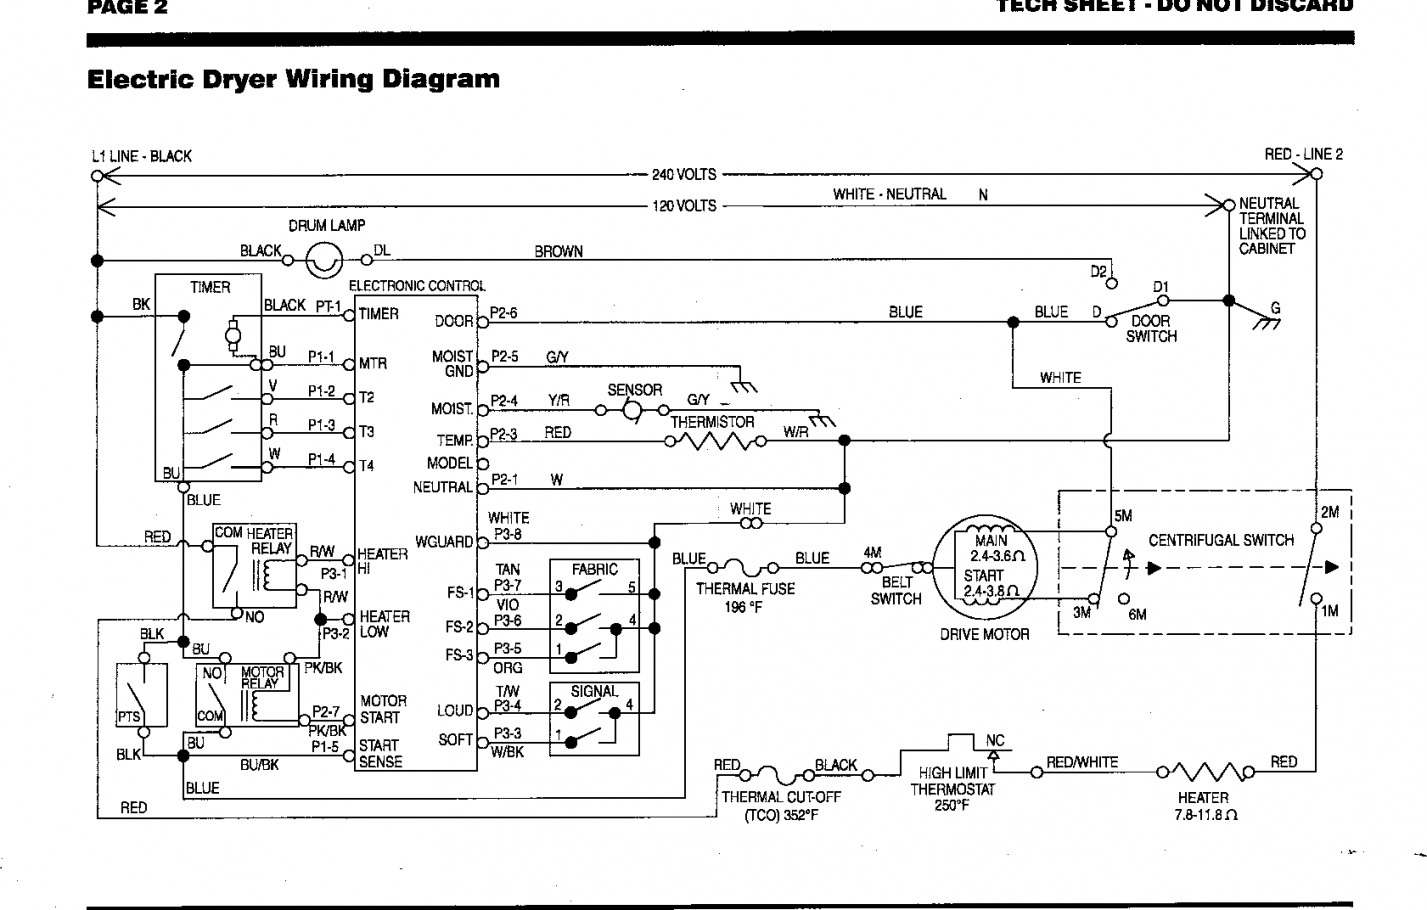 Dryer Schematic | Wiring Diagram - Kenmore Dryer Wiring Diagram